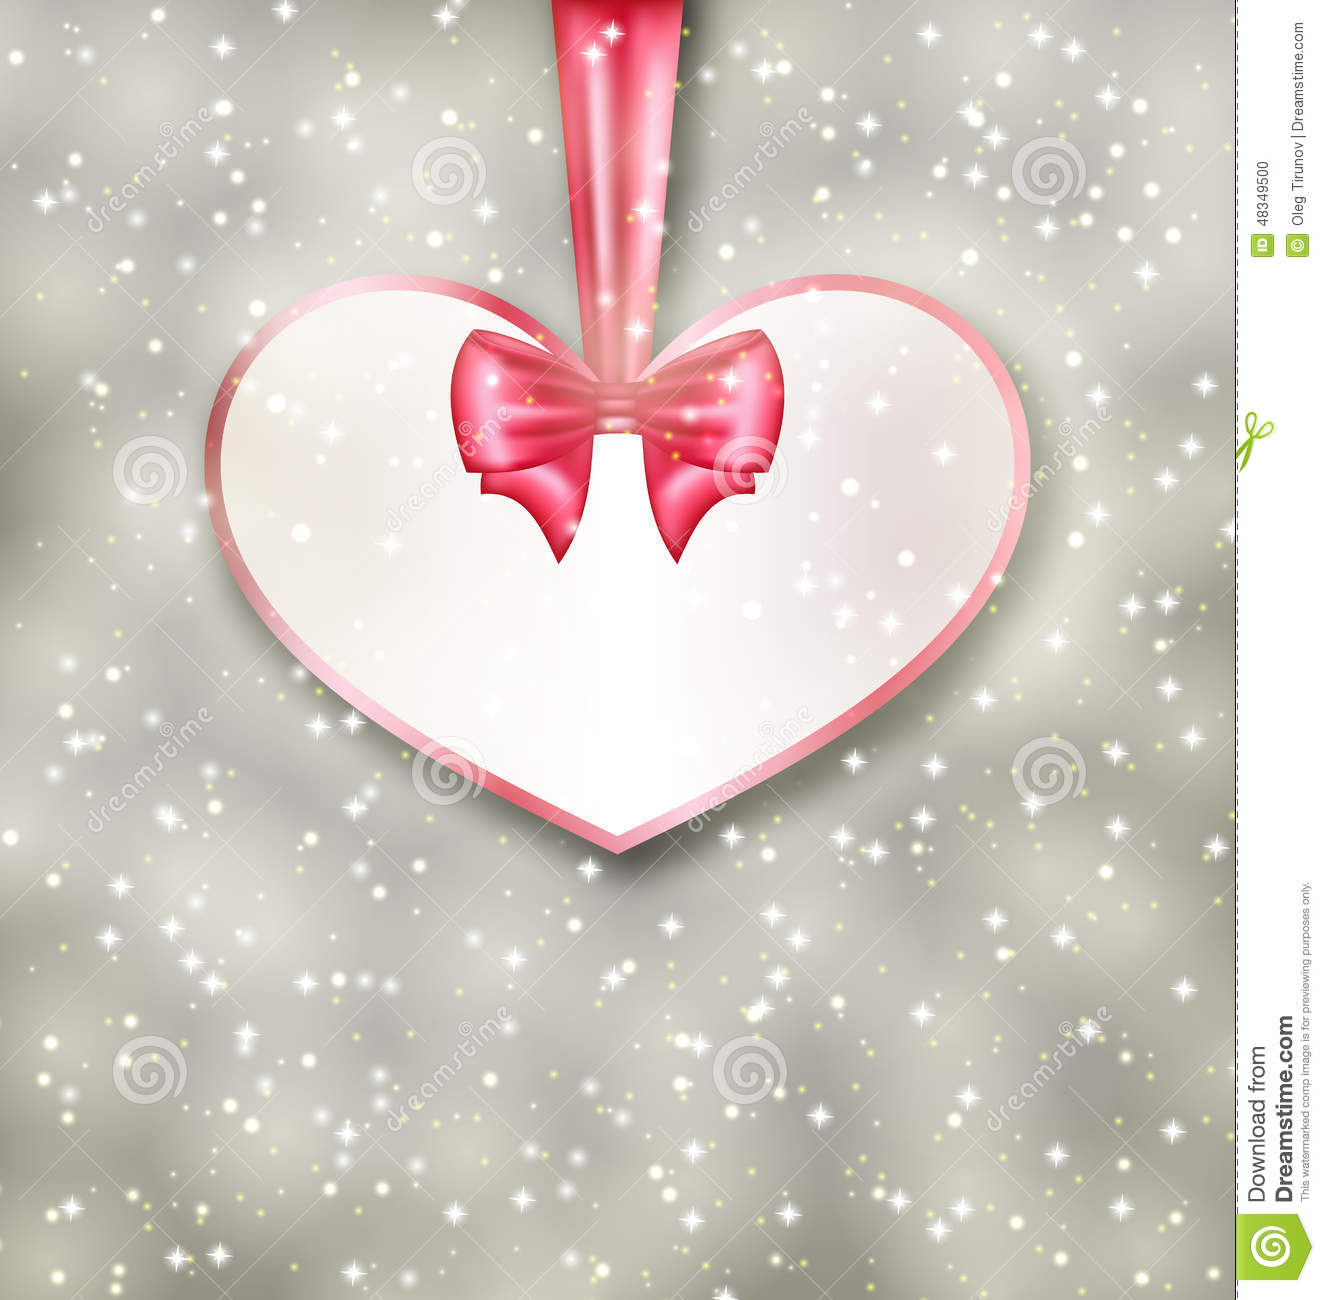 Greeting Paper Card Made Of Heart Shape Valentine Day Vector – Heart Shaped Valentine Cards